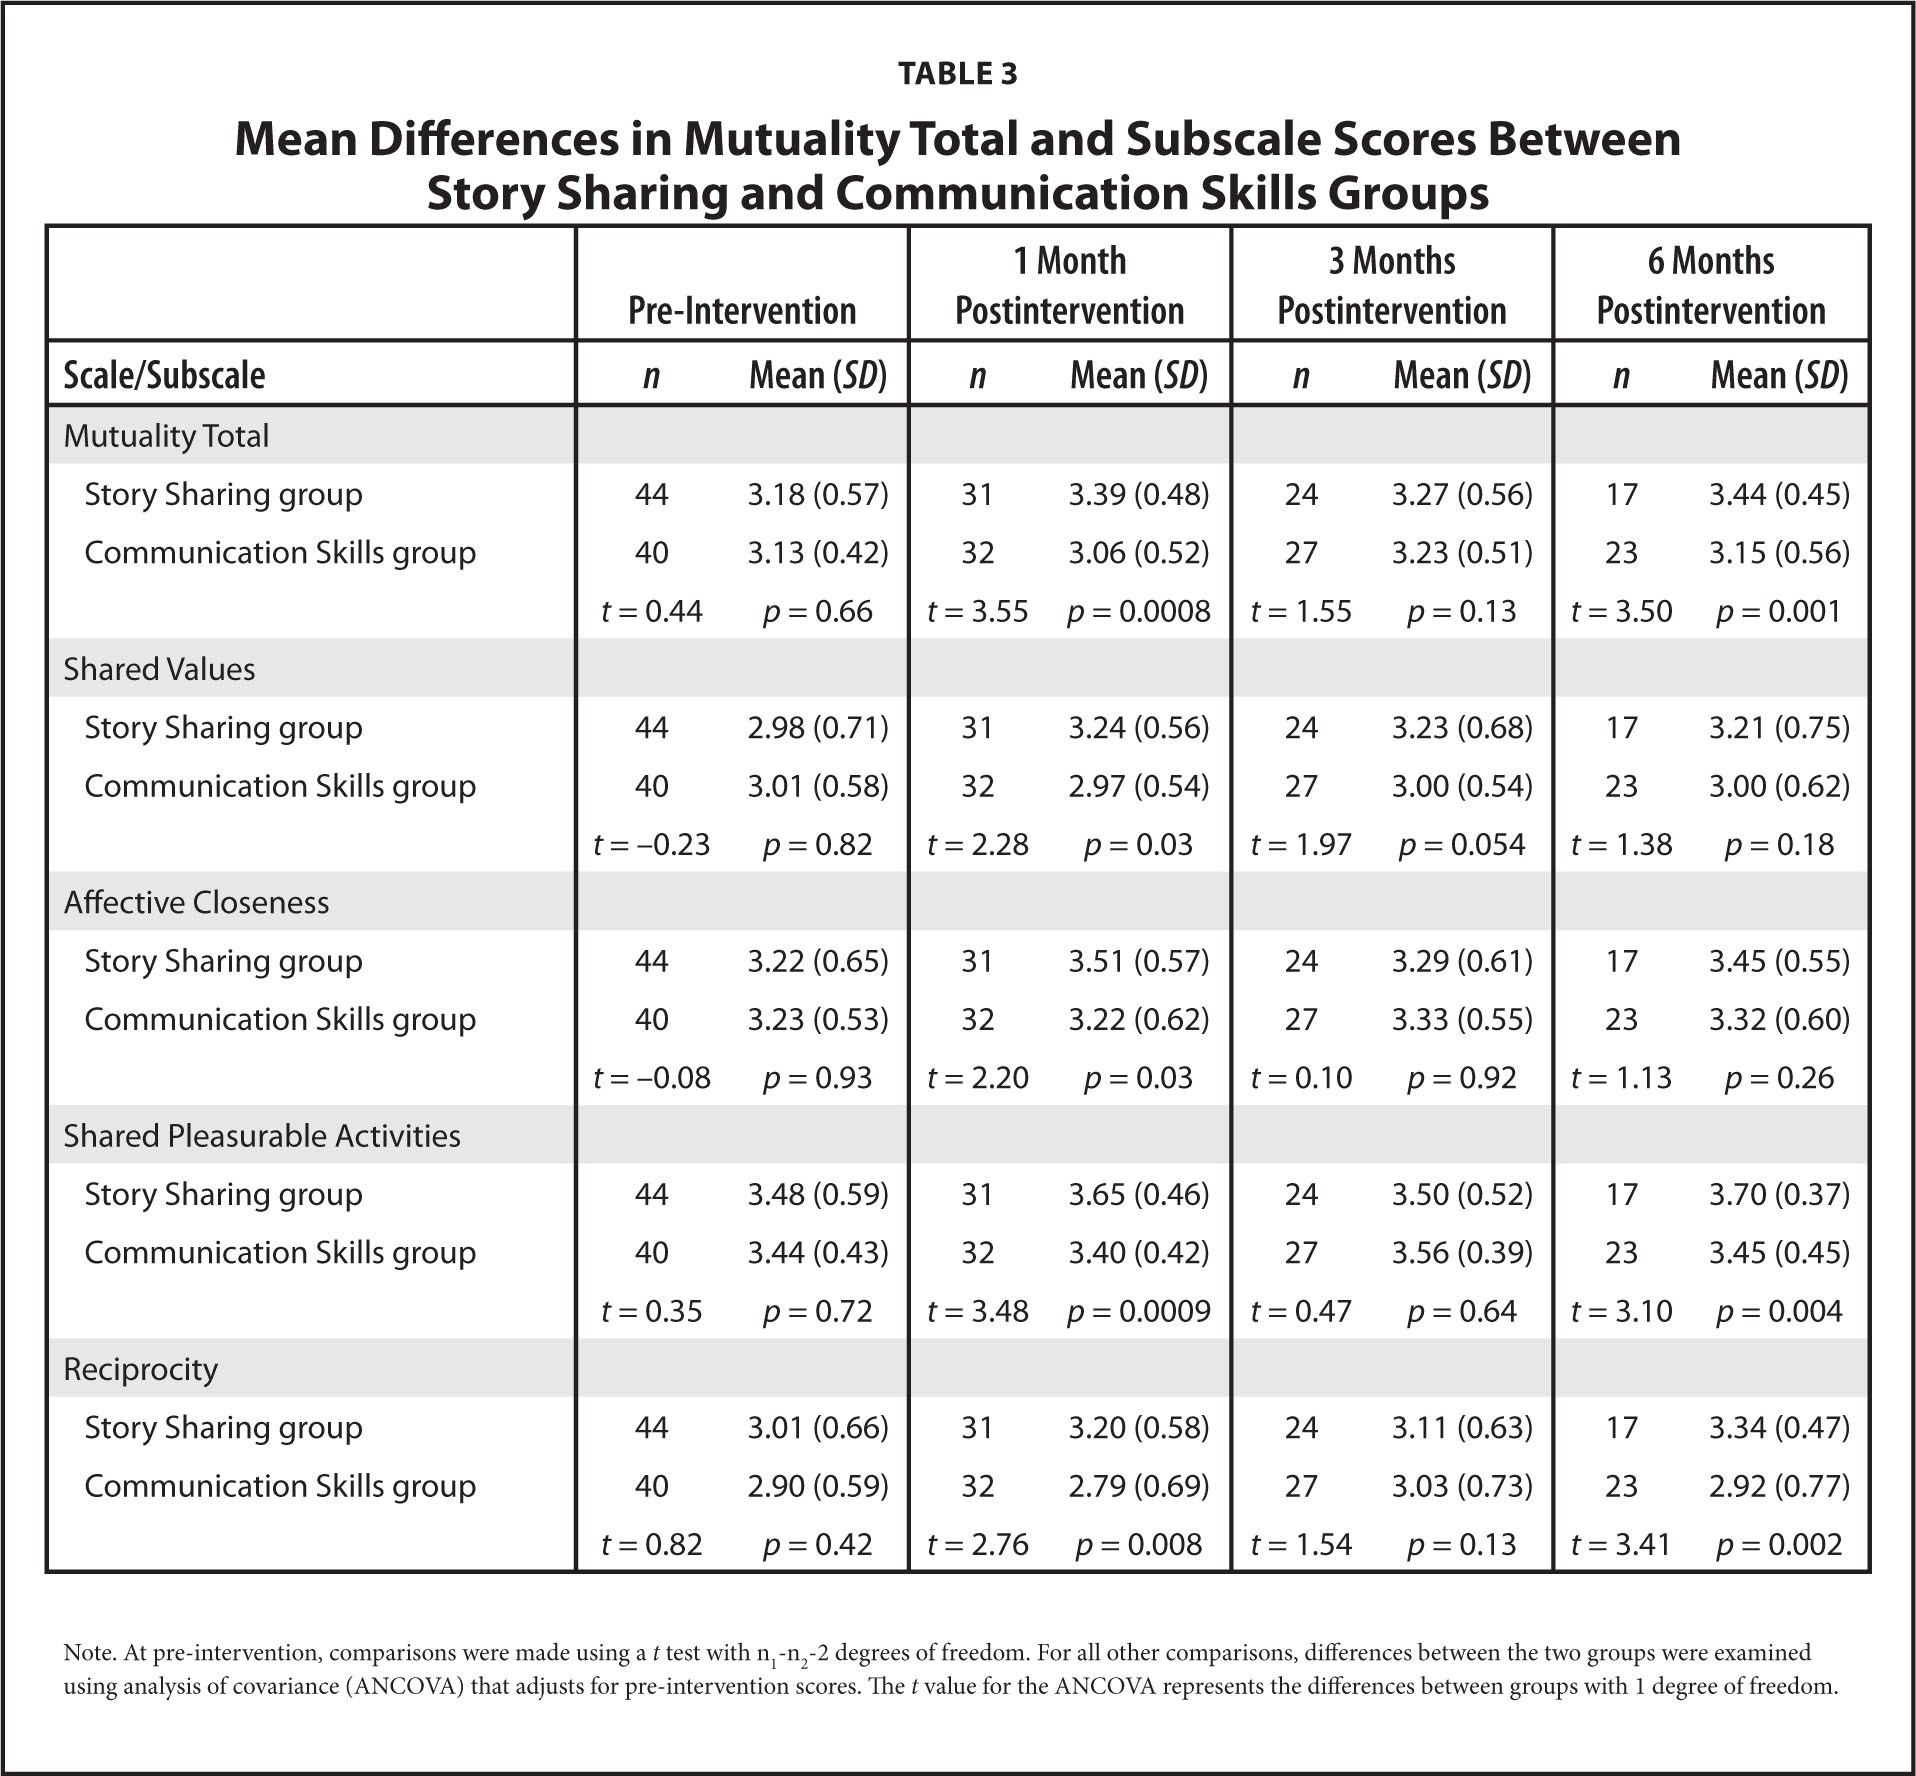 Mean Differences in Mutuality Total and Subscale Scores Between Story Sharing and Communication Skills Groups